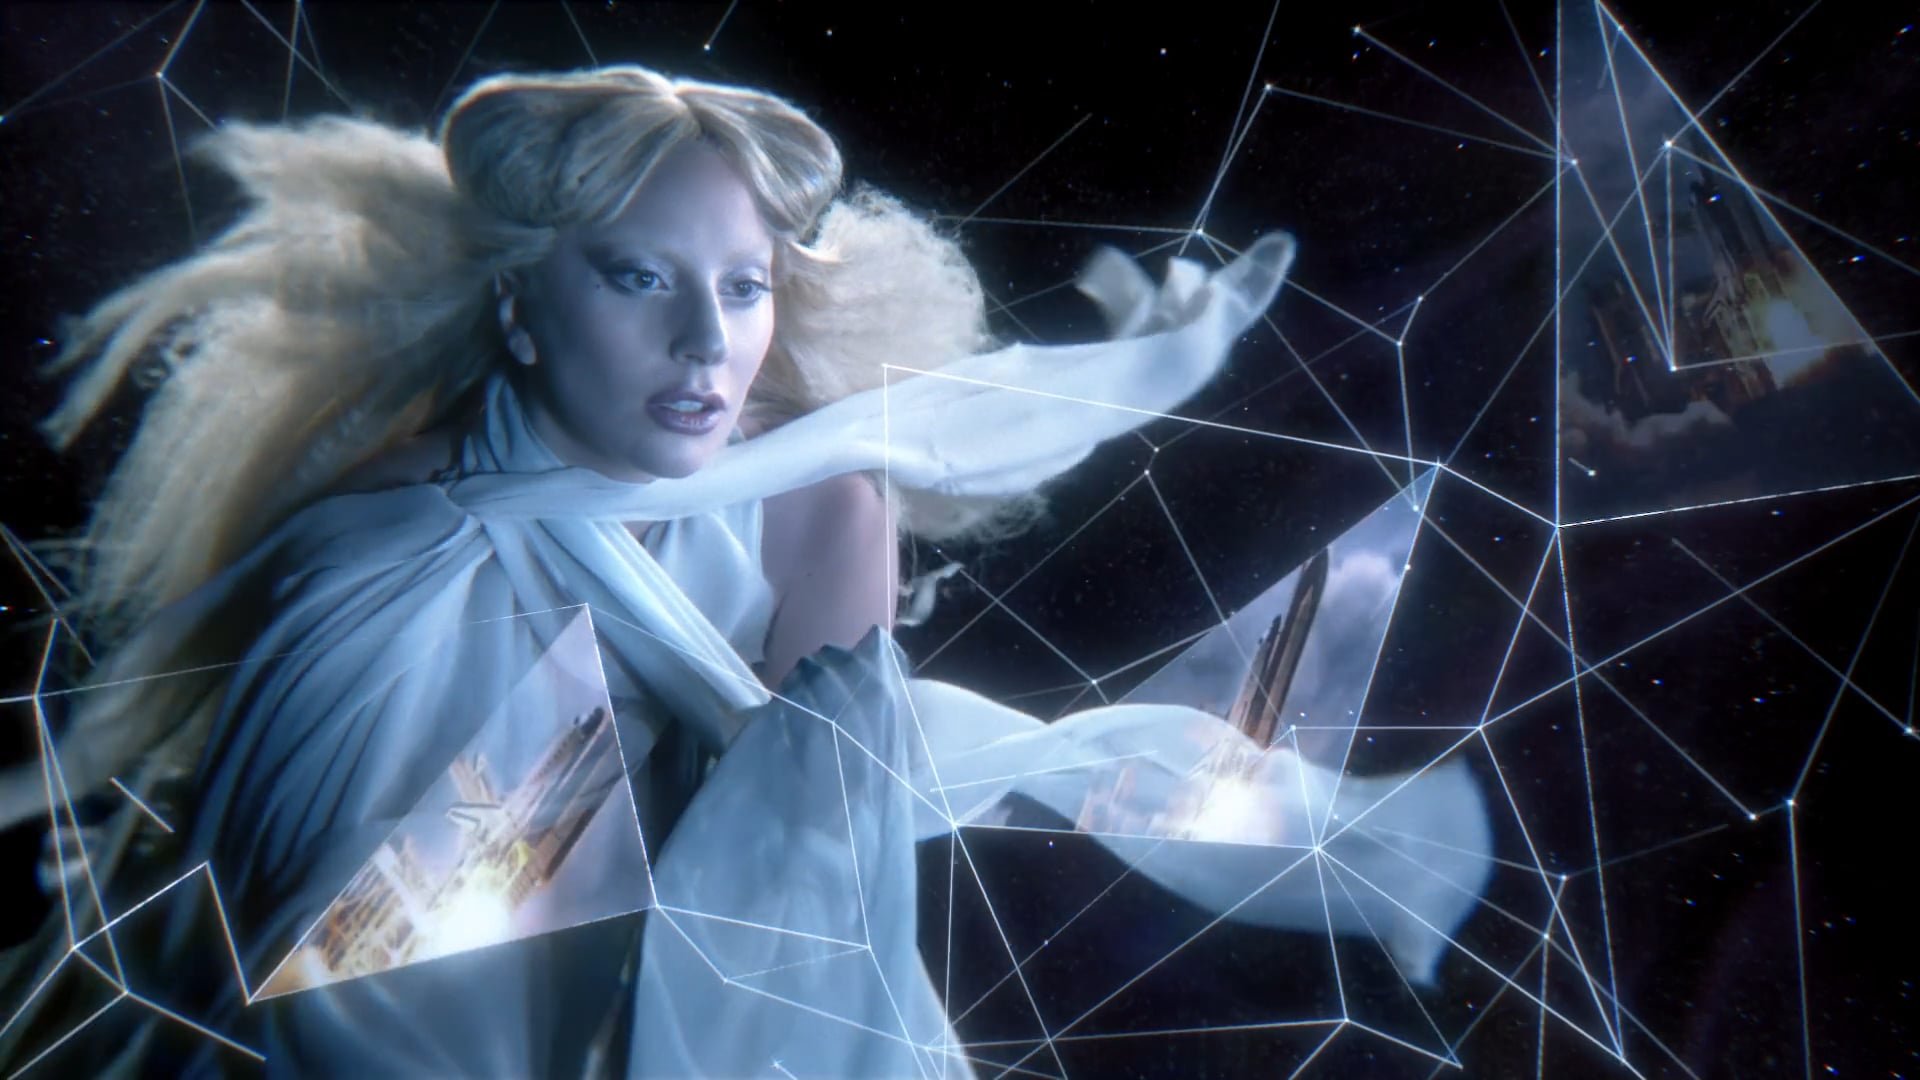 Intel and The Grammys Present 'The Lady Gaga Experience': TV Spot